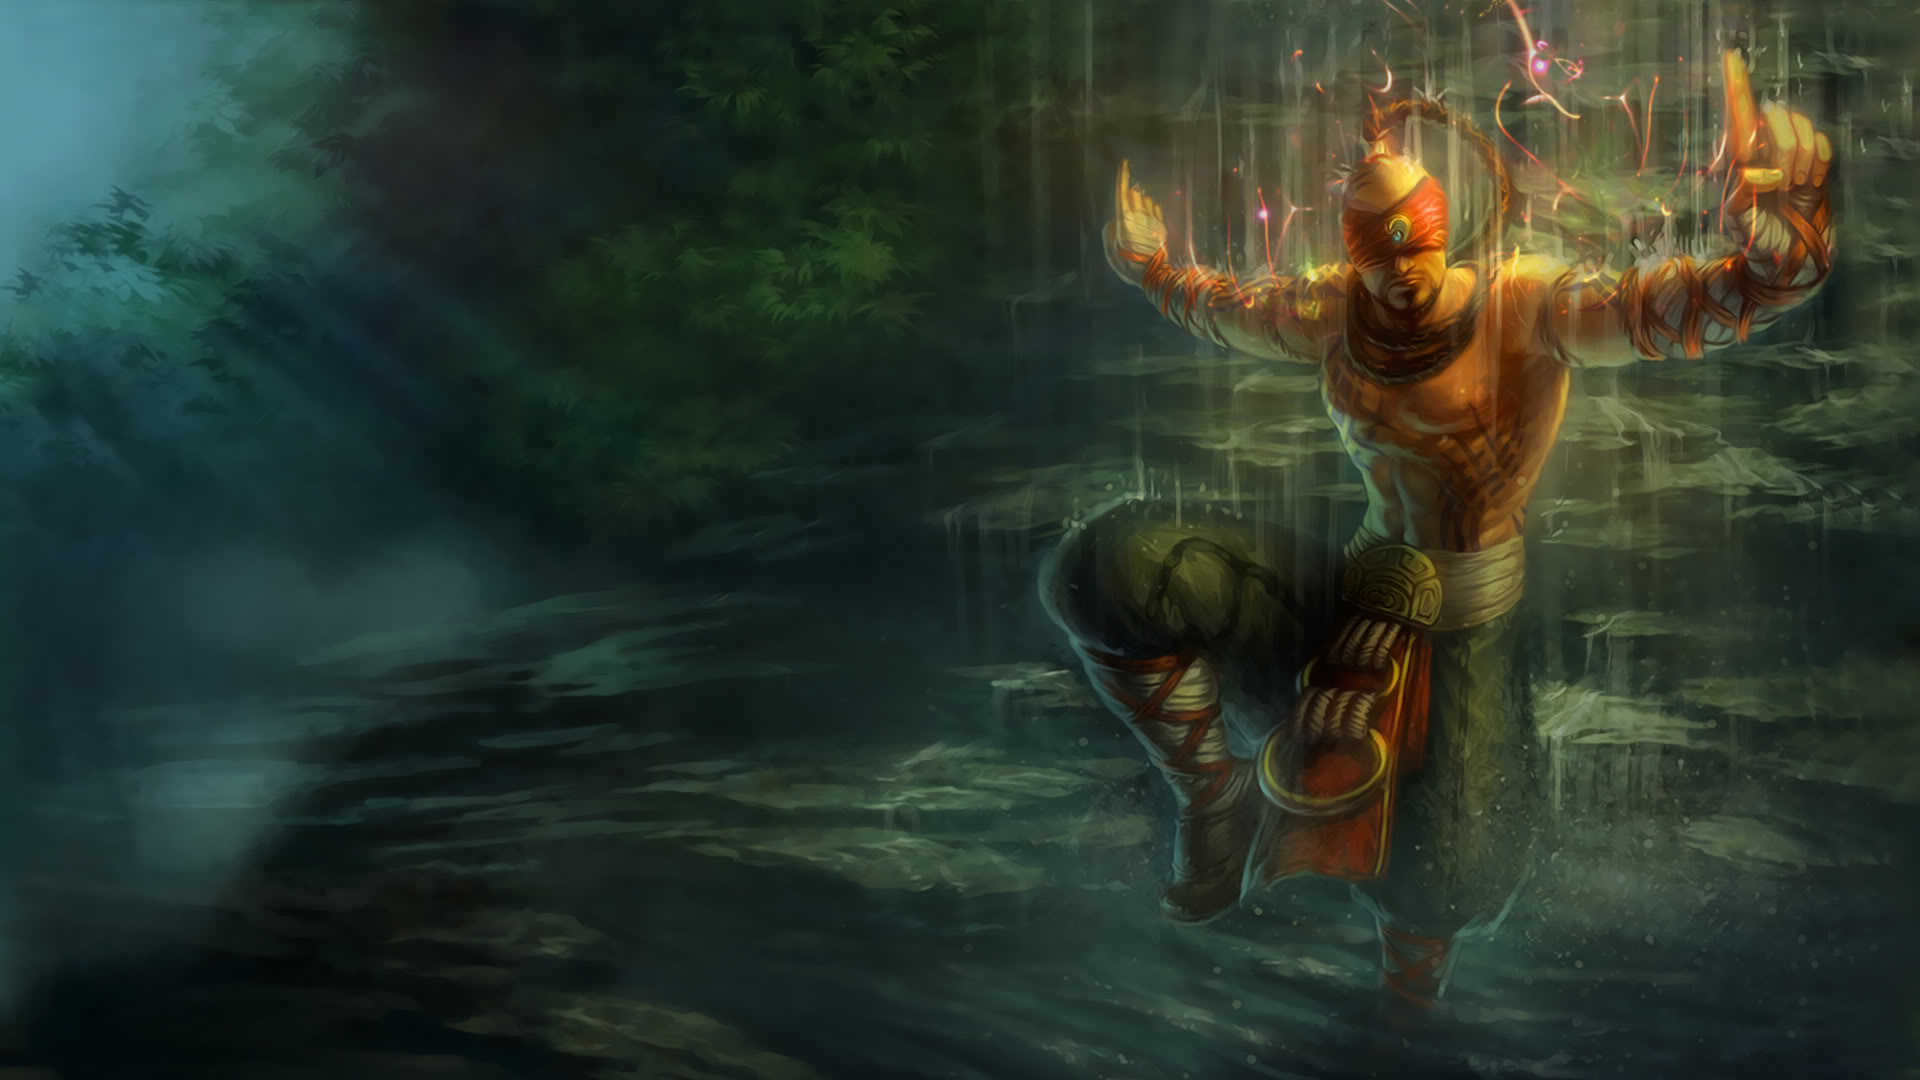 Lee Sin Computer Wallpapers, Desktop Backgrounds 1920x1080 Id: 384508